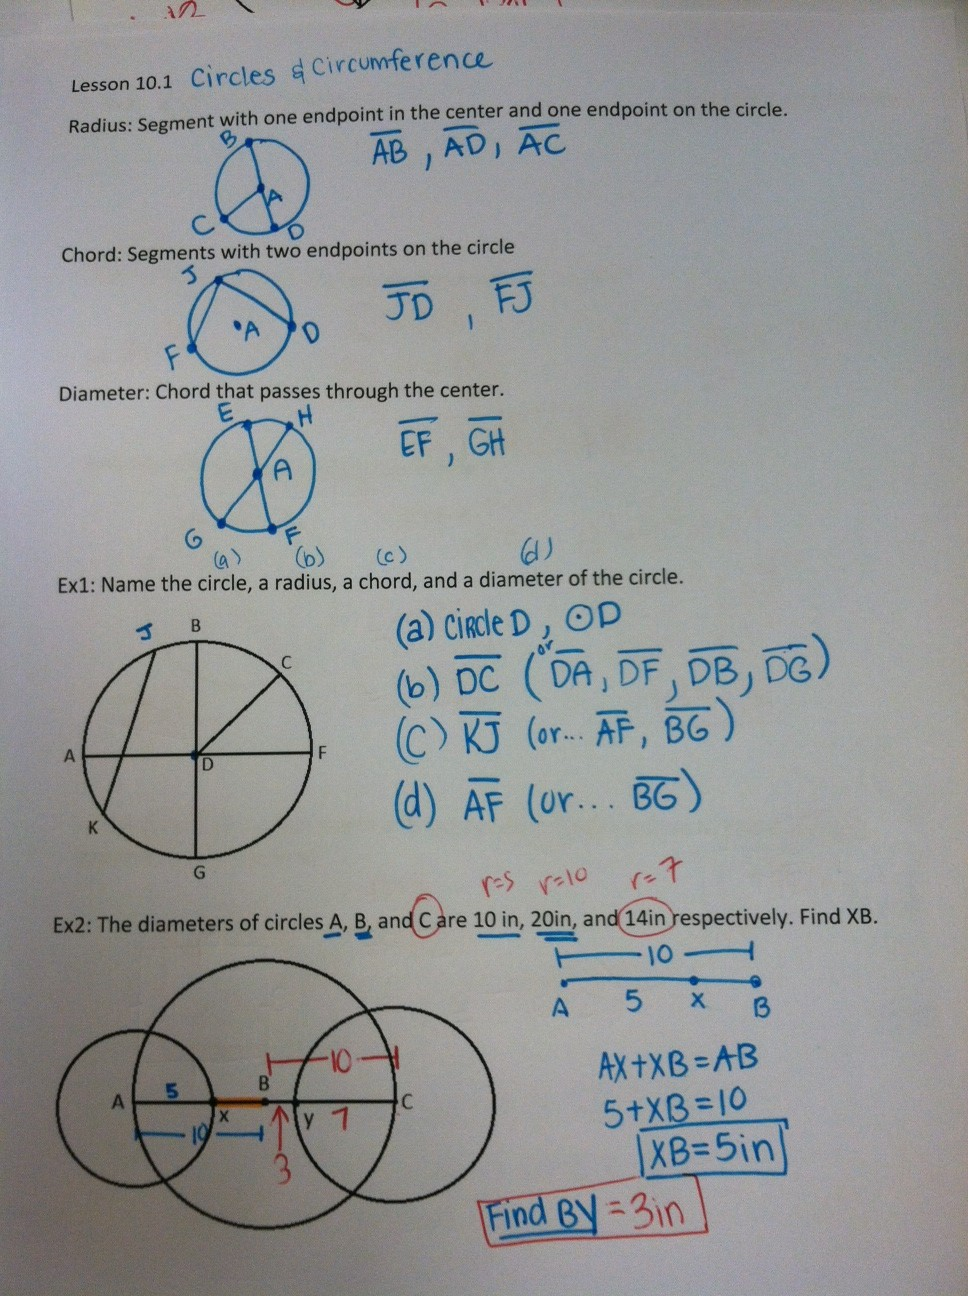 Geometry Circle Worksheets Free Library triangular prism surface ...